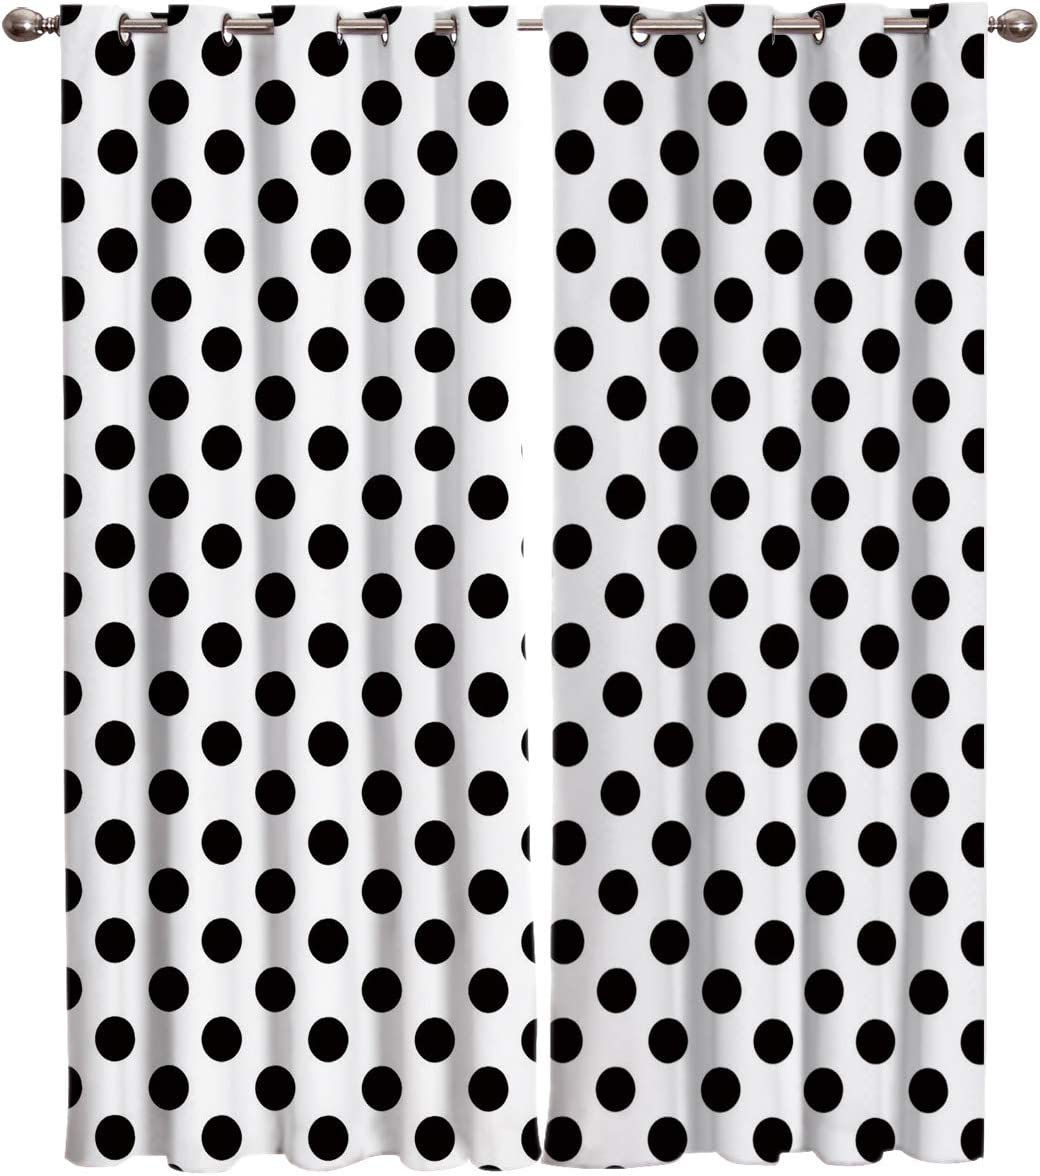 SIMIGREE Window Curtains Black and White Polka Dots Window Treatment Thermal Insulated Fabric Curtains for Living Room Bedroom Sliding Patio Door Kitchen Window Drapes 52